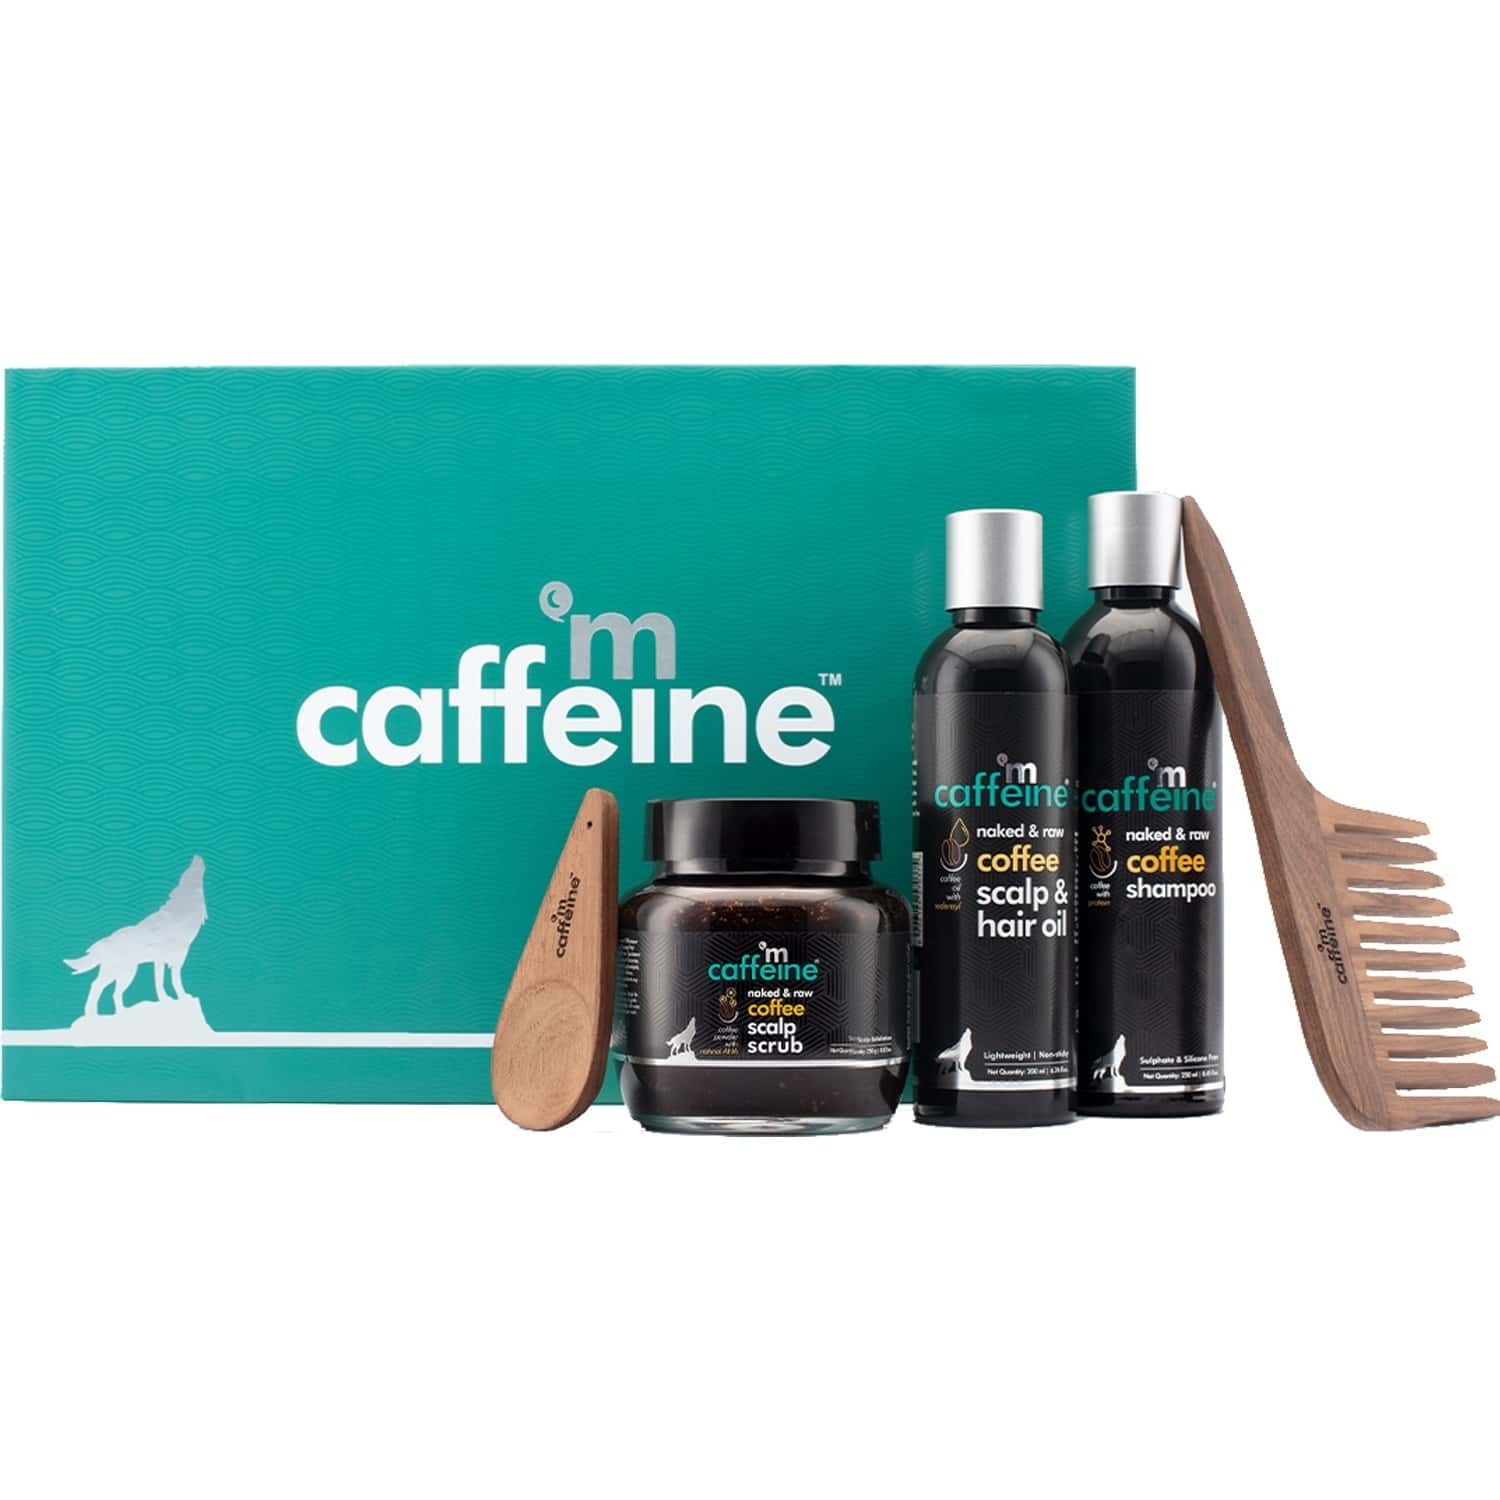 Mcaffeine Limited Edition Coffee Brew Hair Care Gift Kit | Shampoo 250ml, Hair Oil 200ml, Scalp Scrub 250gm & Handcrafted Wooden Comb